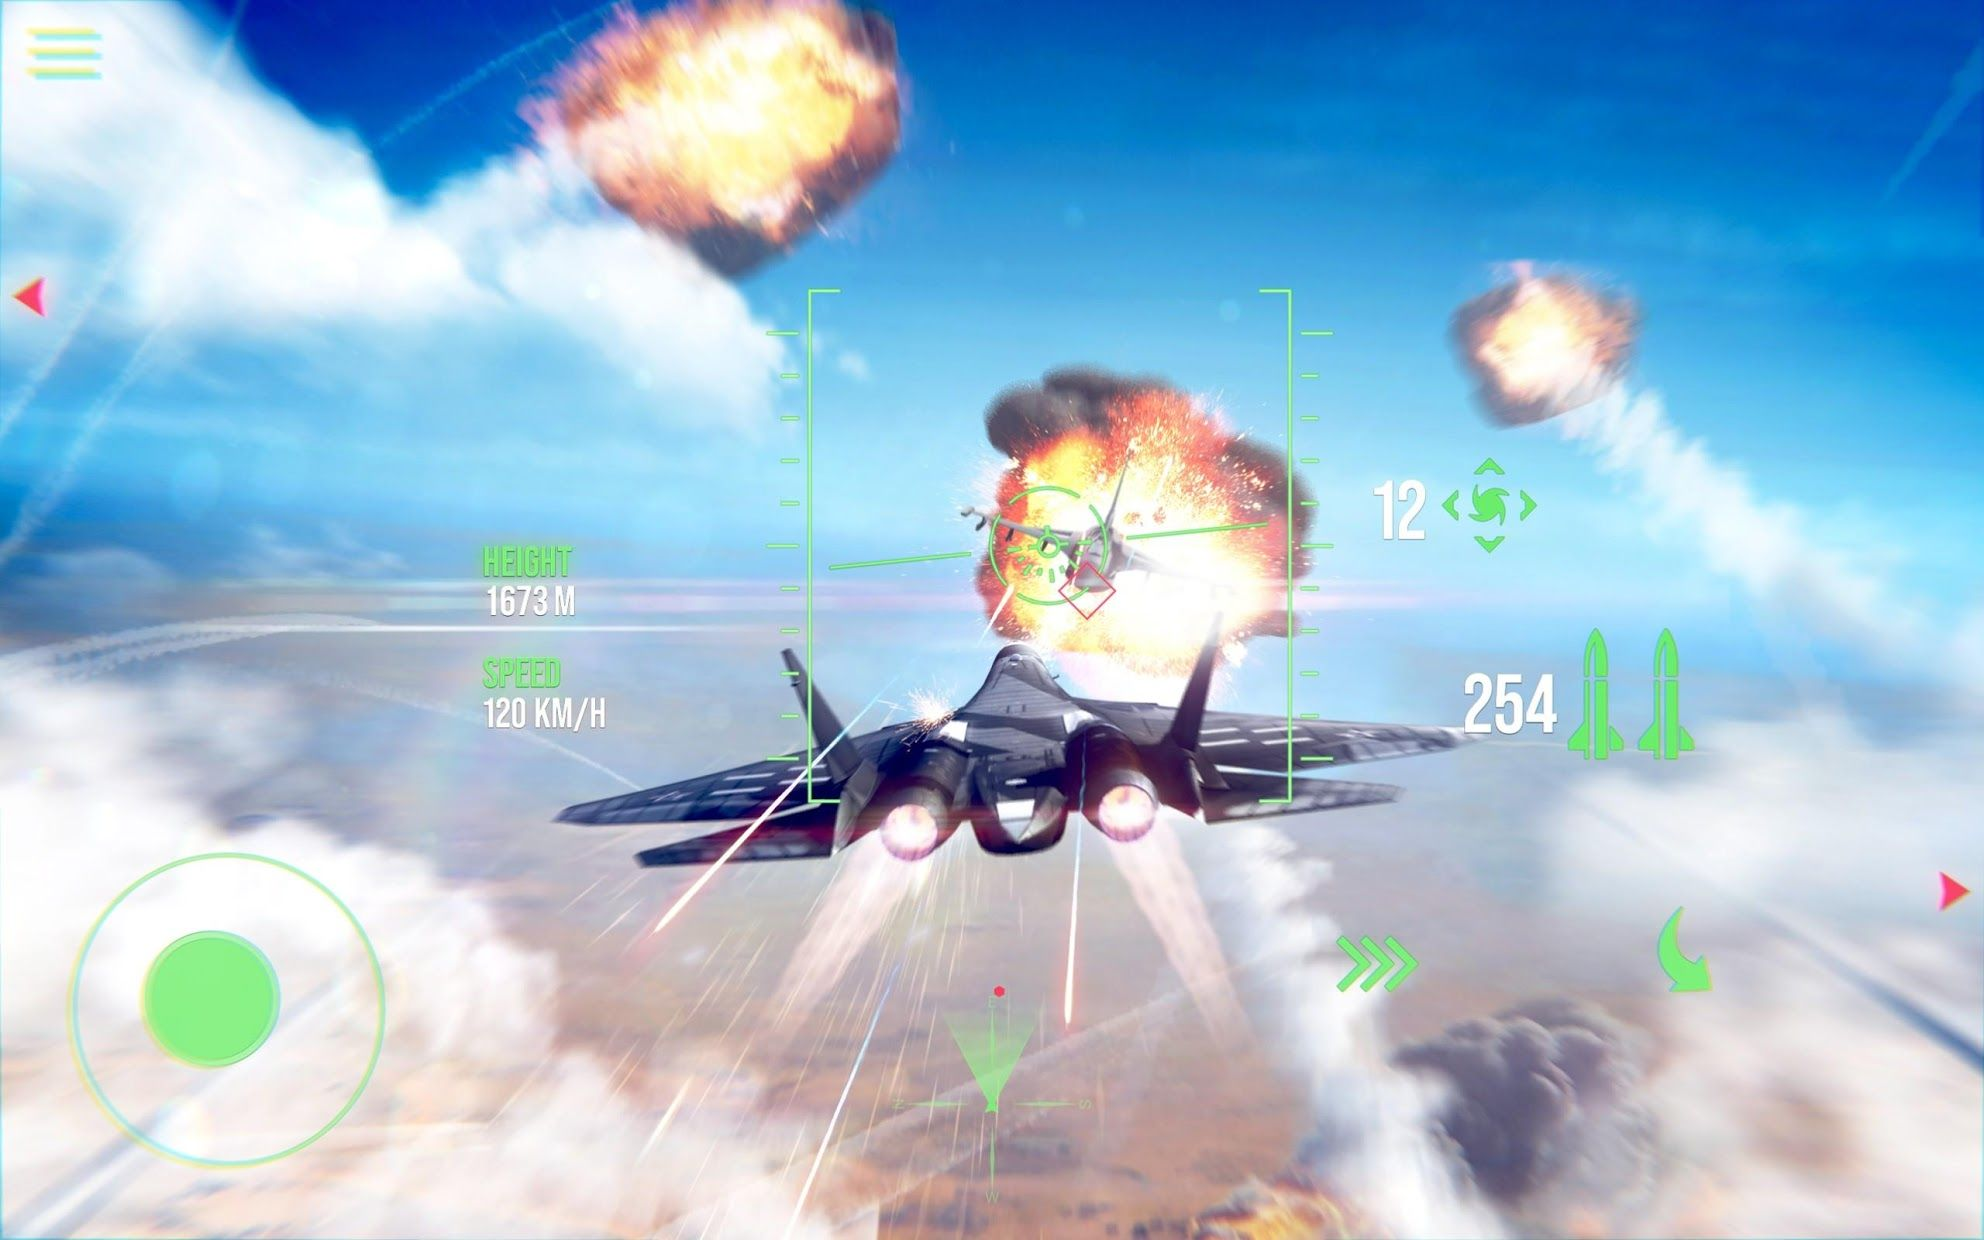 Modern Warplanes: Combat Aces PvP Skies Warfare 游戏截图1